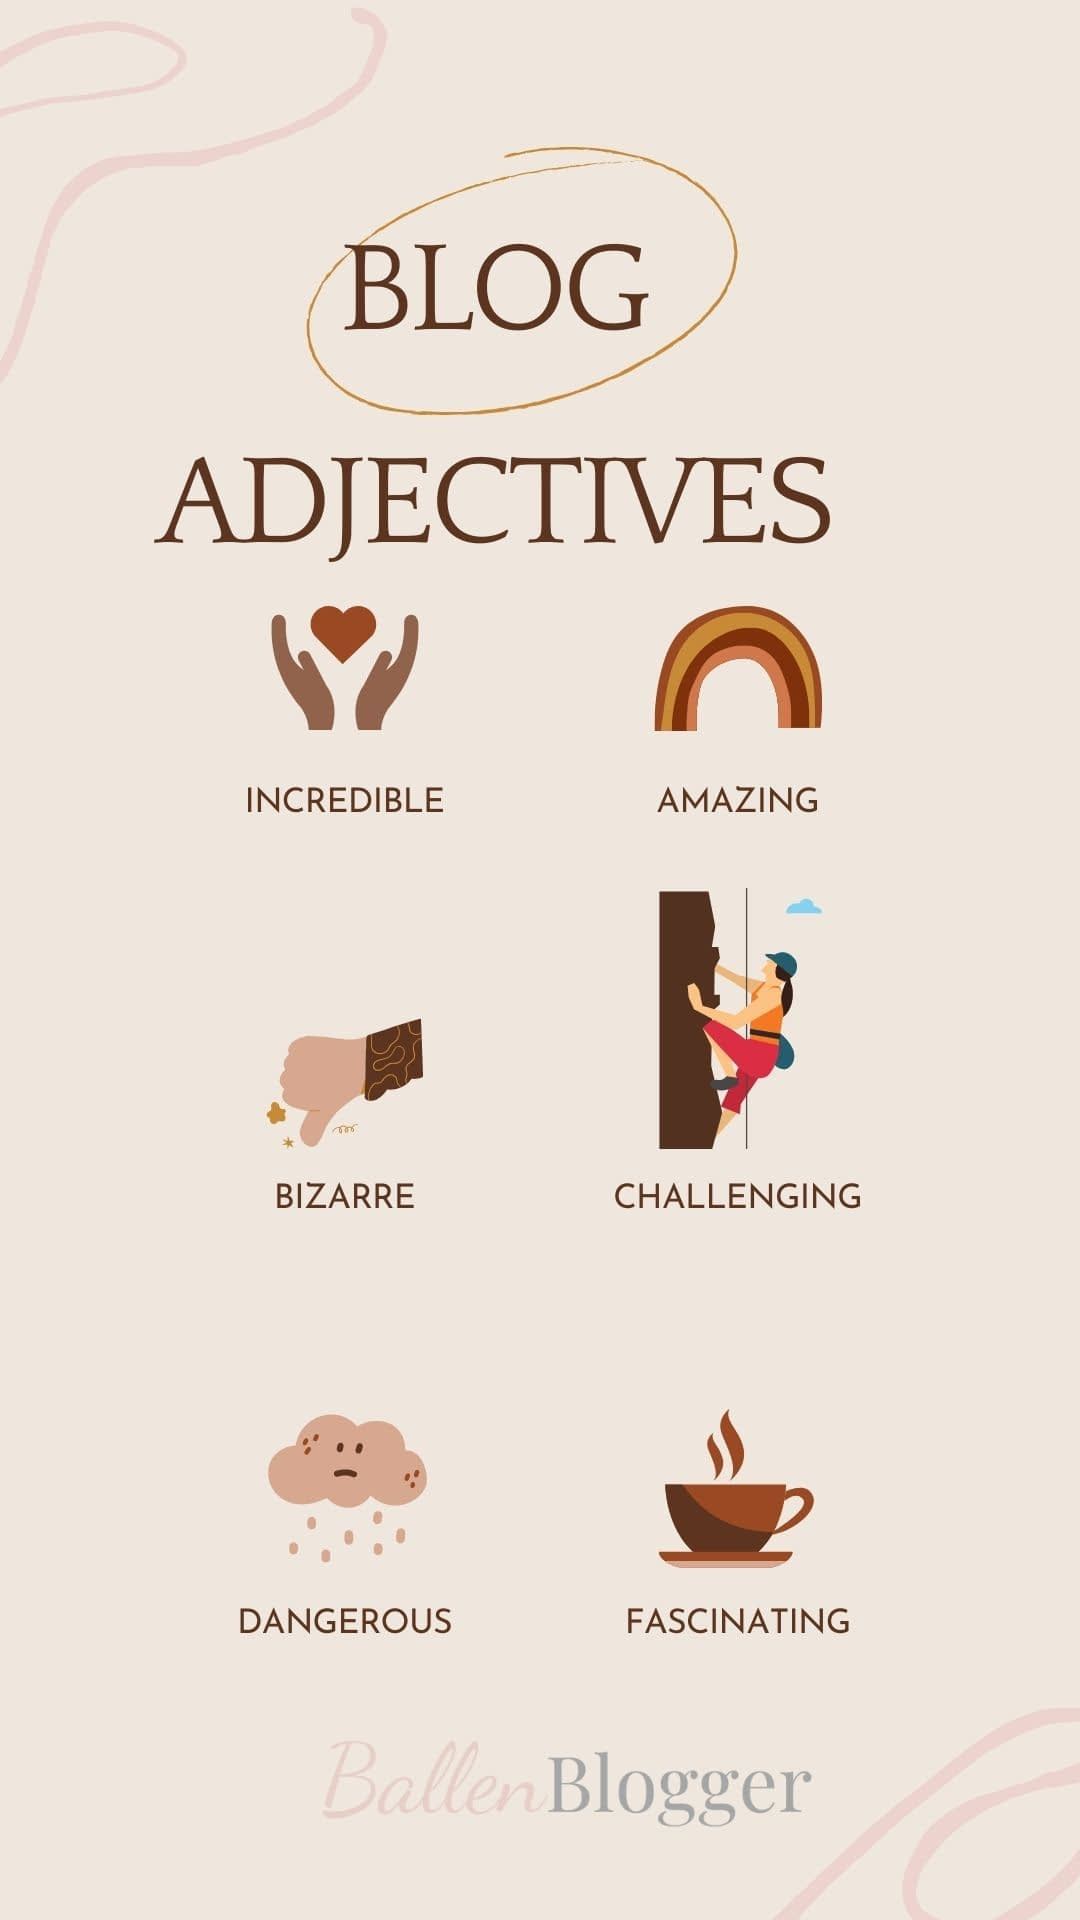 Econsultancy shared their favorite adjectives to use in a blog headline to invoke emotion.